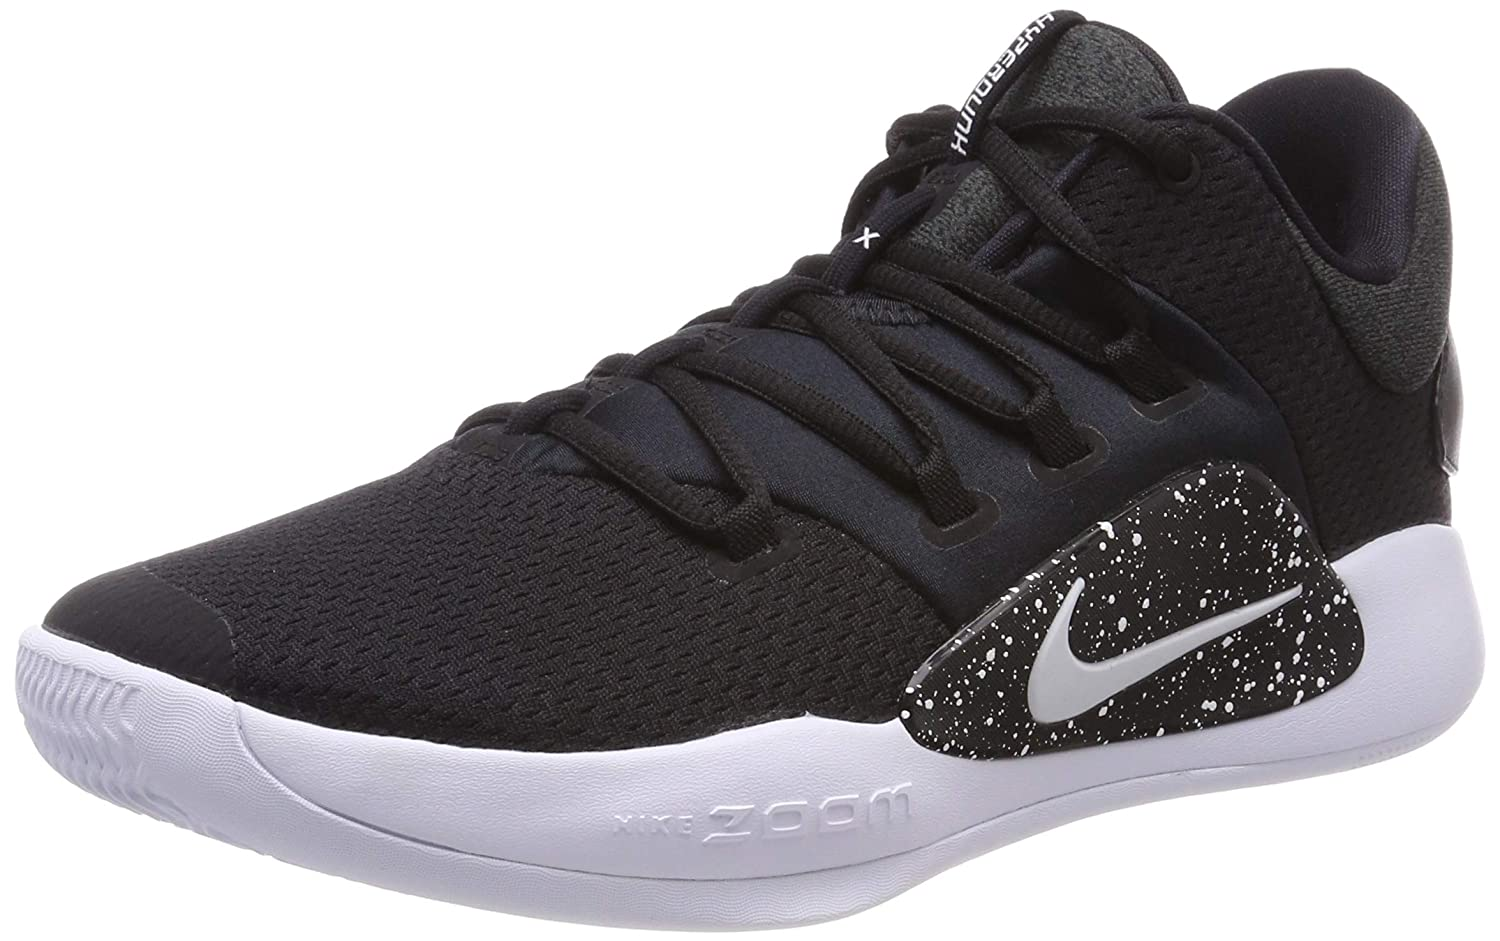 quality design b24de d732c Nike Men's Hyperdunk X Low Basketball Shoe